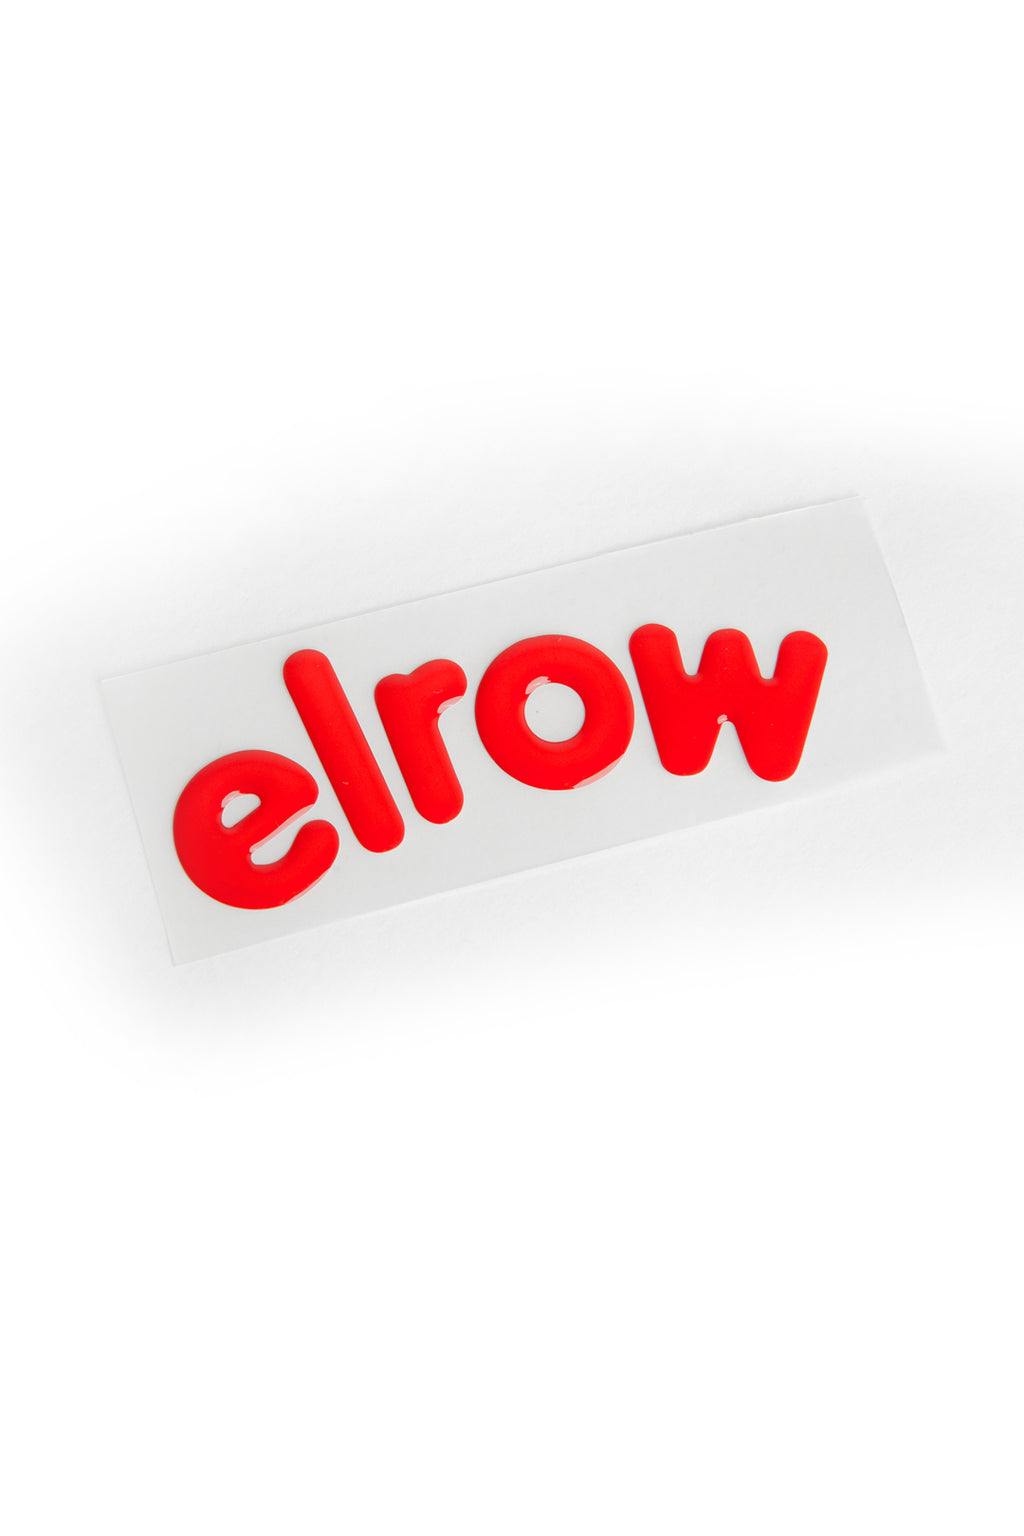 elrow red letters sticker